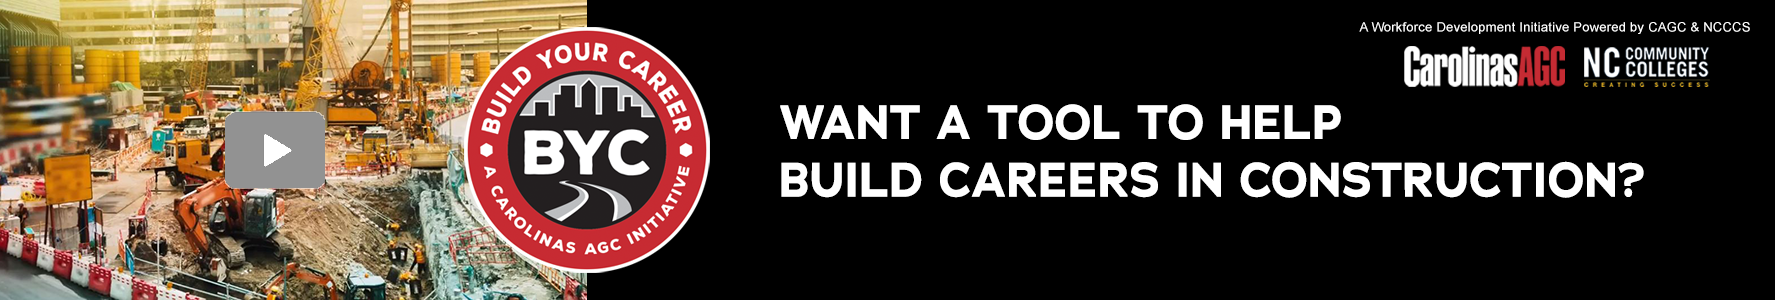 Want a tool to help build careers in construction?